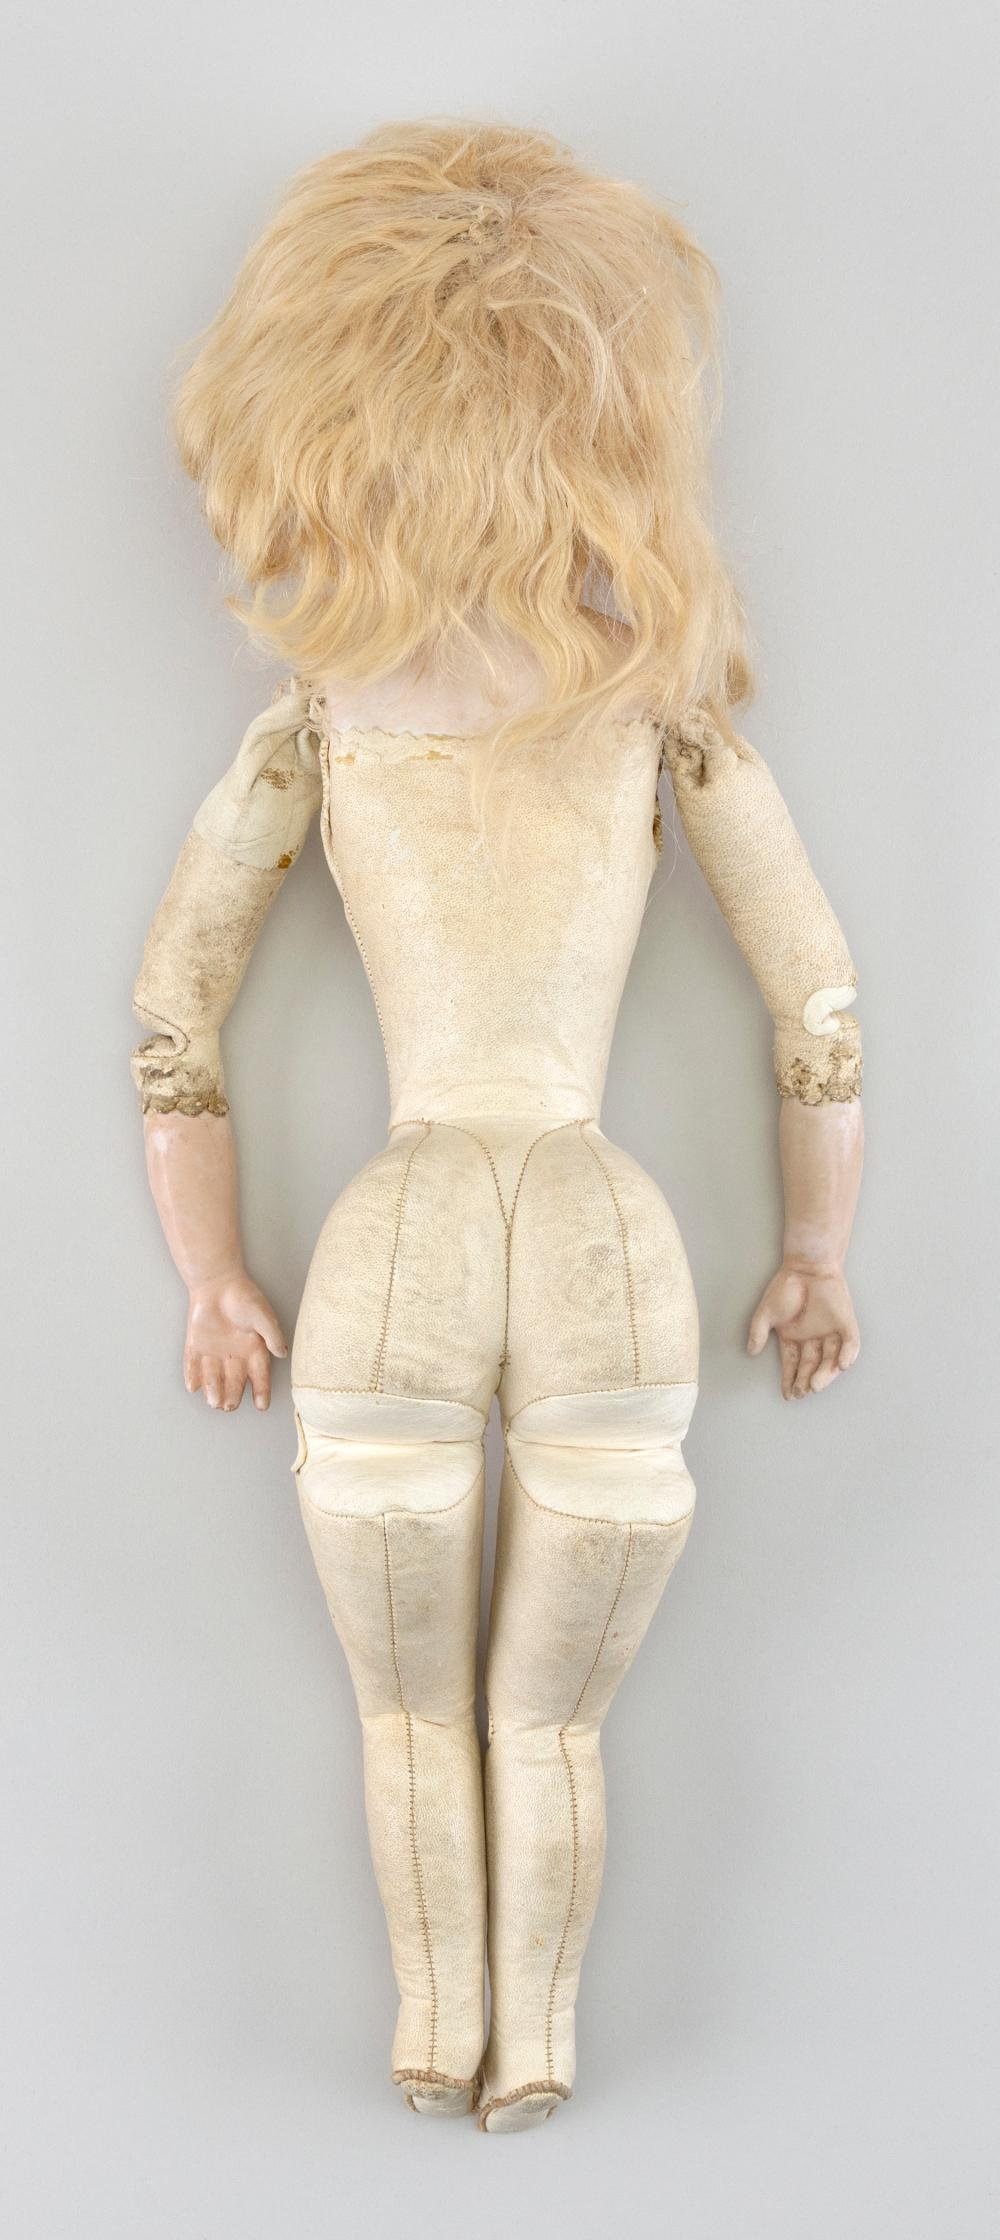 GERMAN BISQUE-HEAD DOLL Circa 1890 Height 16